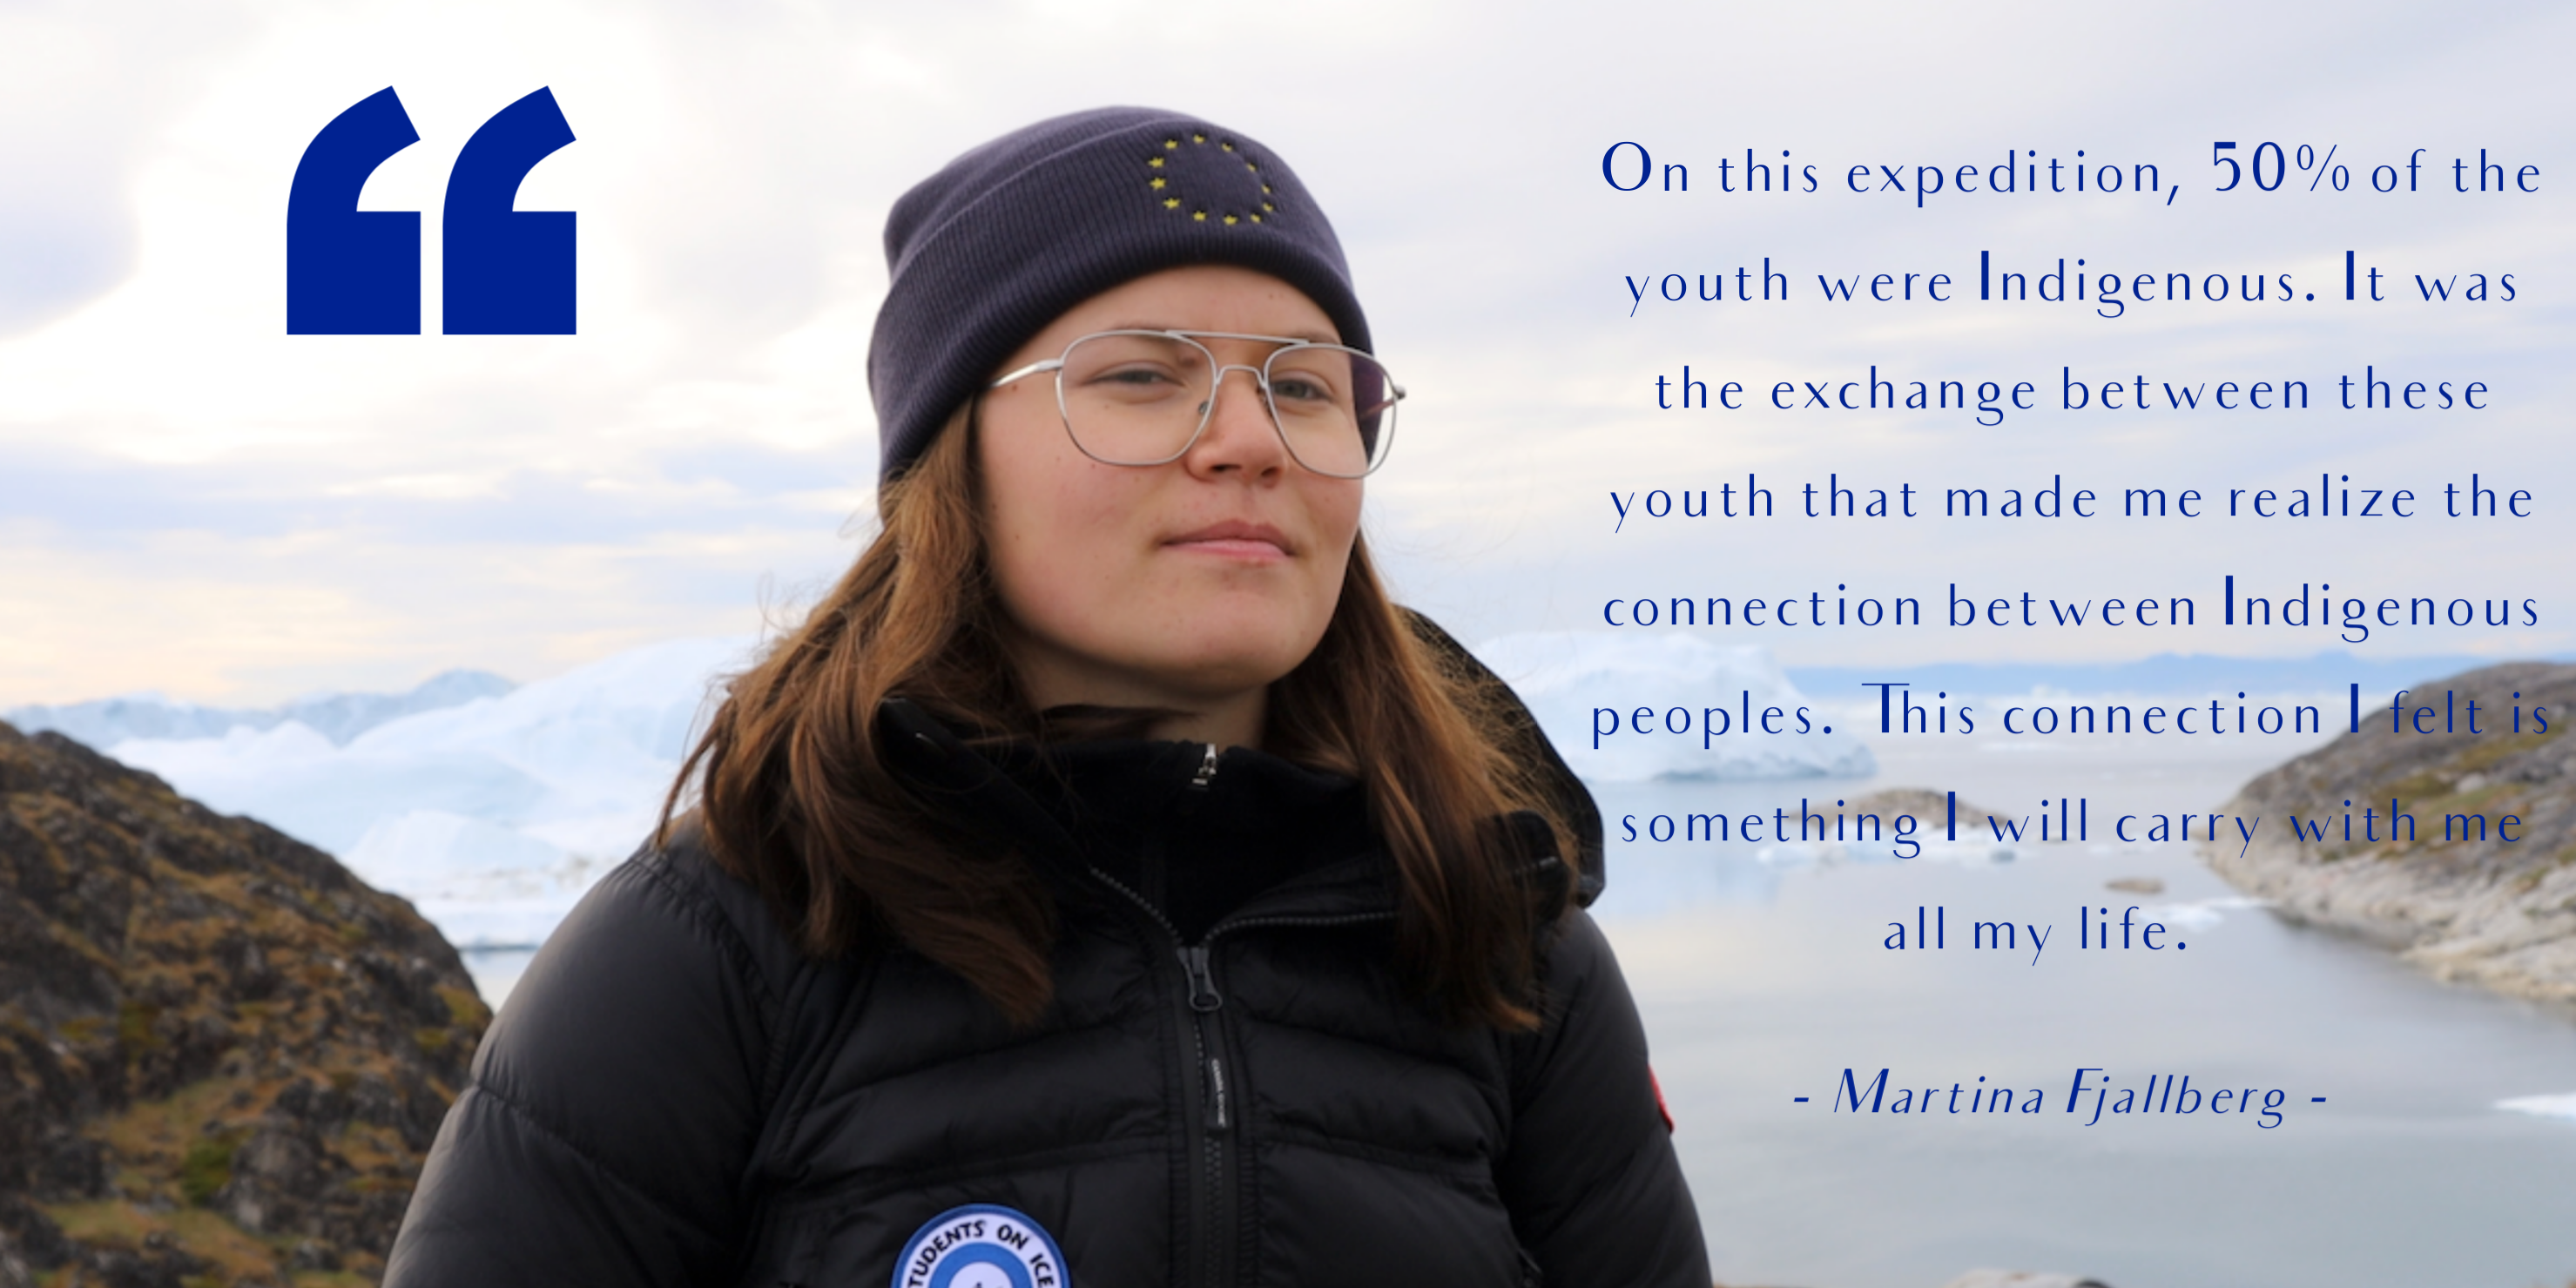 Martina Students on Ice Quote